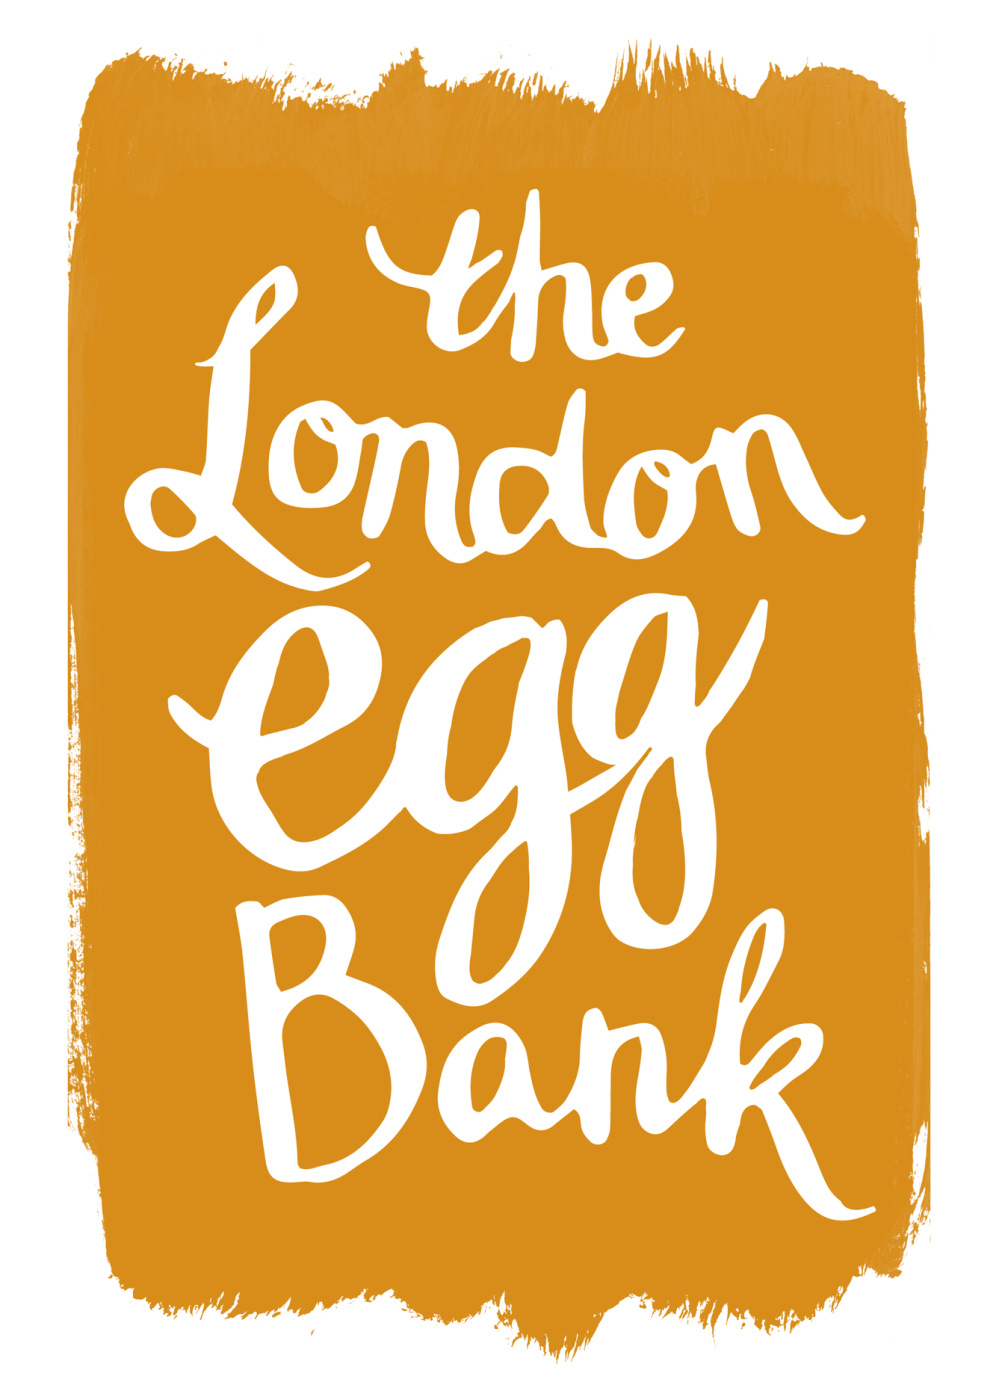 London Egg Bank identity